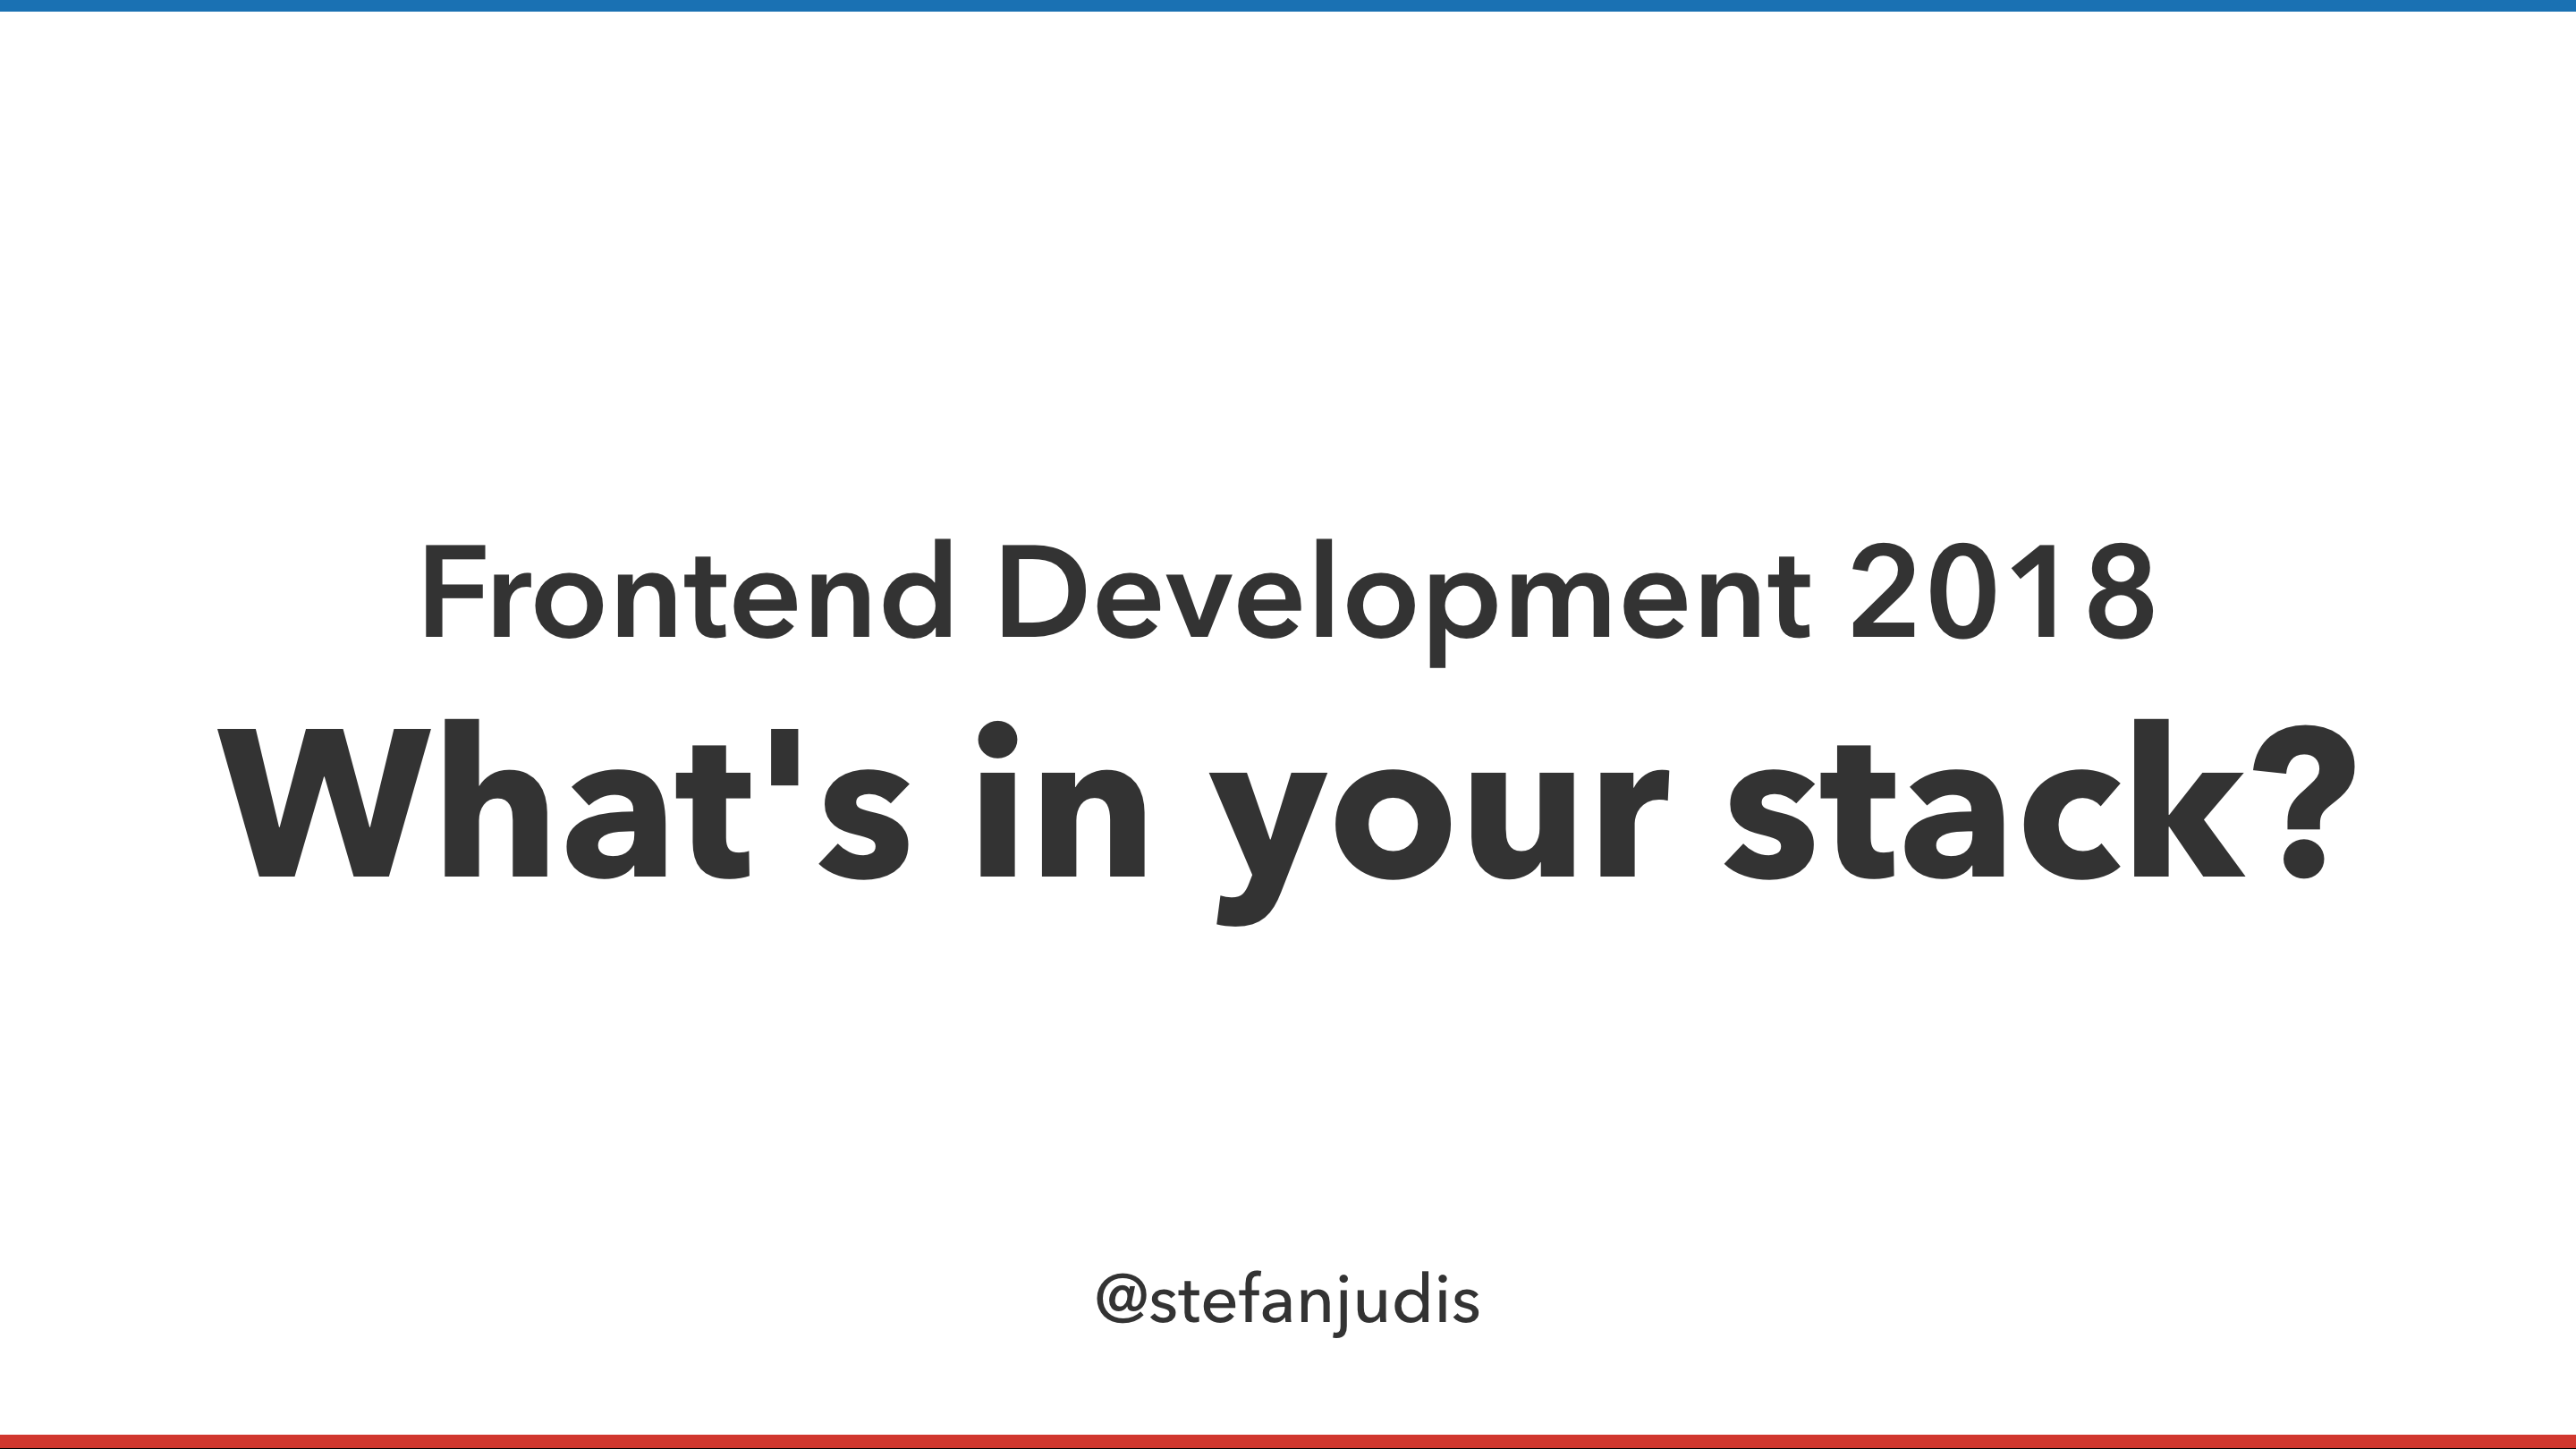 Frontend development 2018 – what's in your stack?